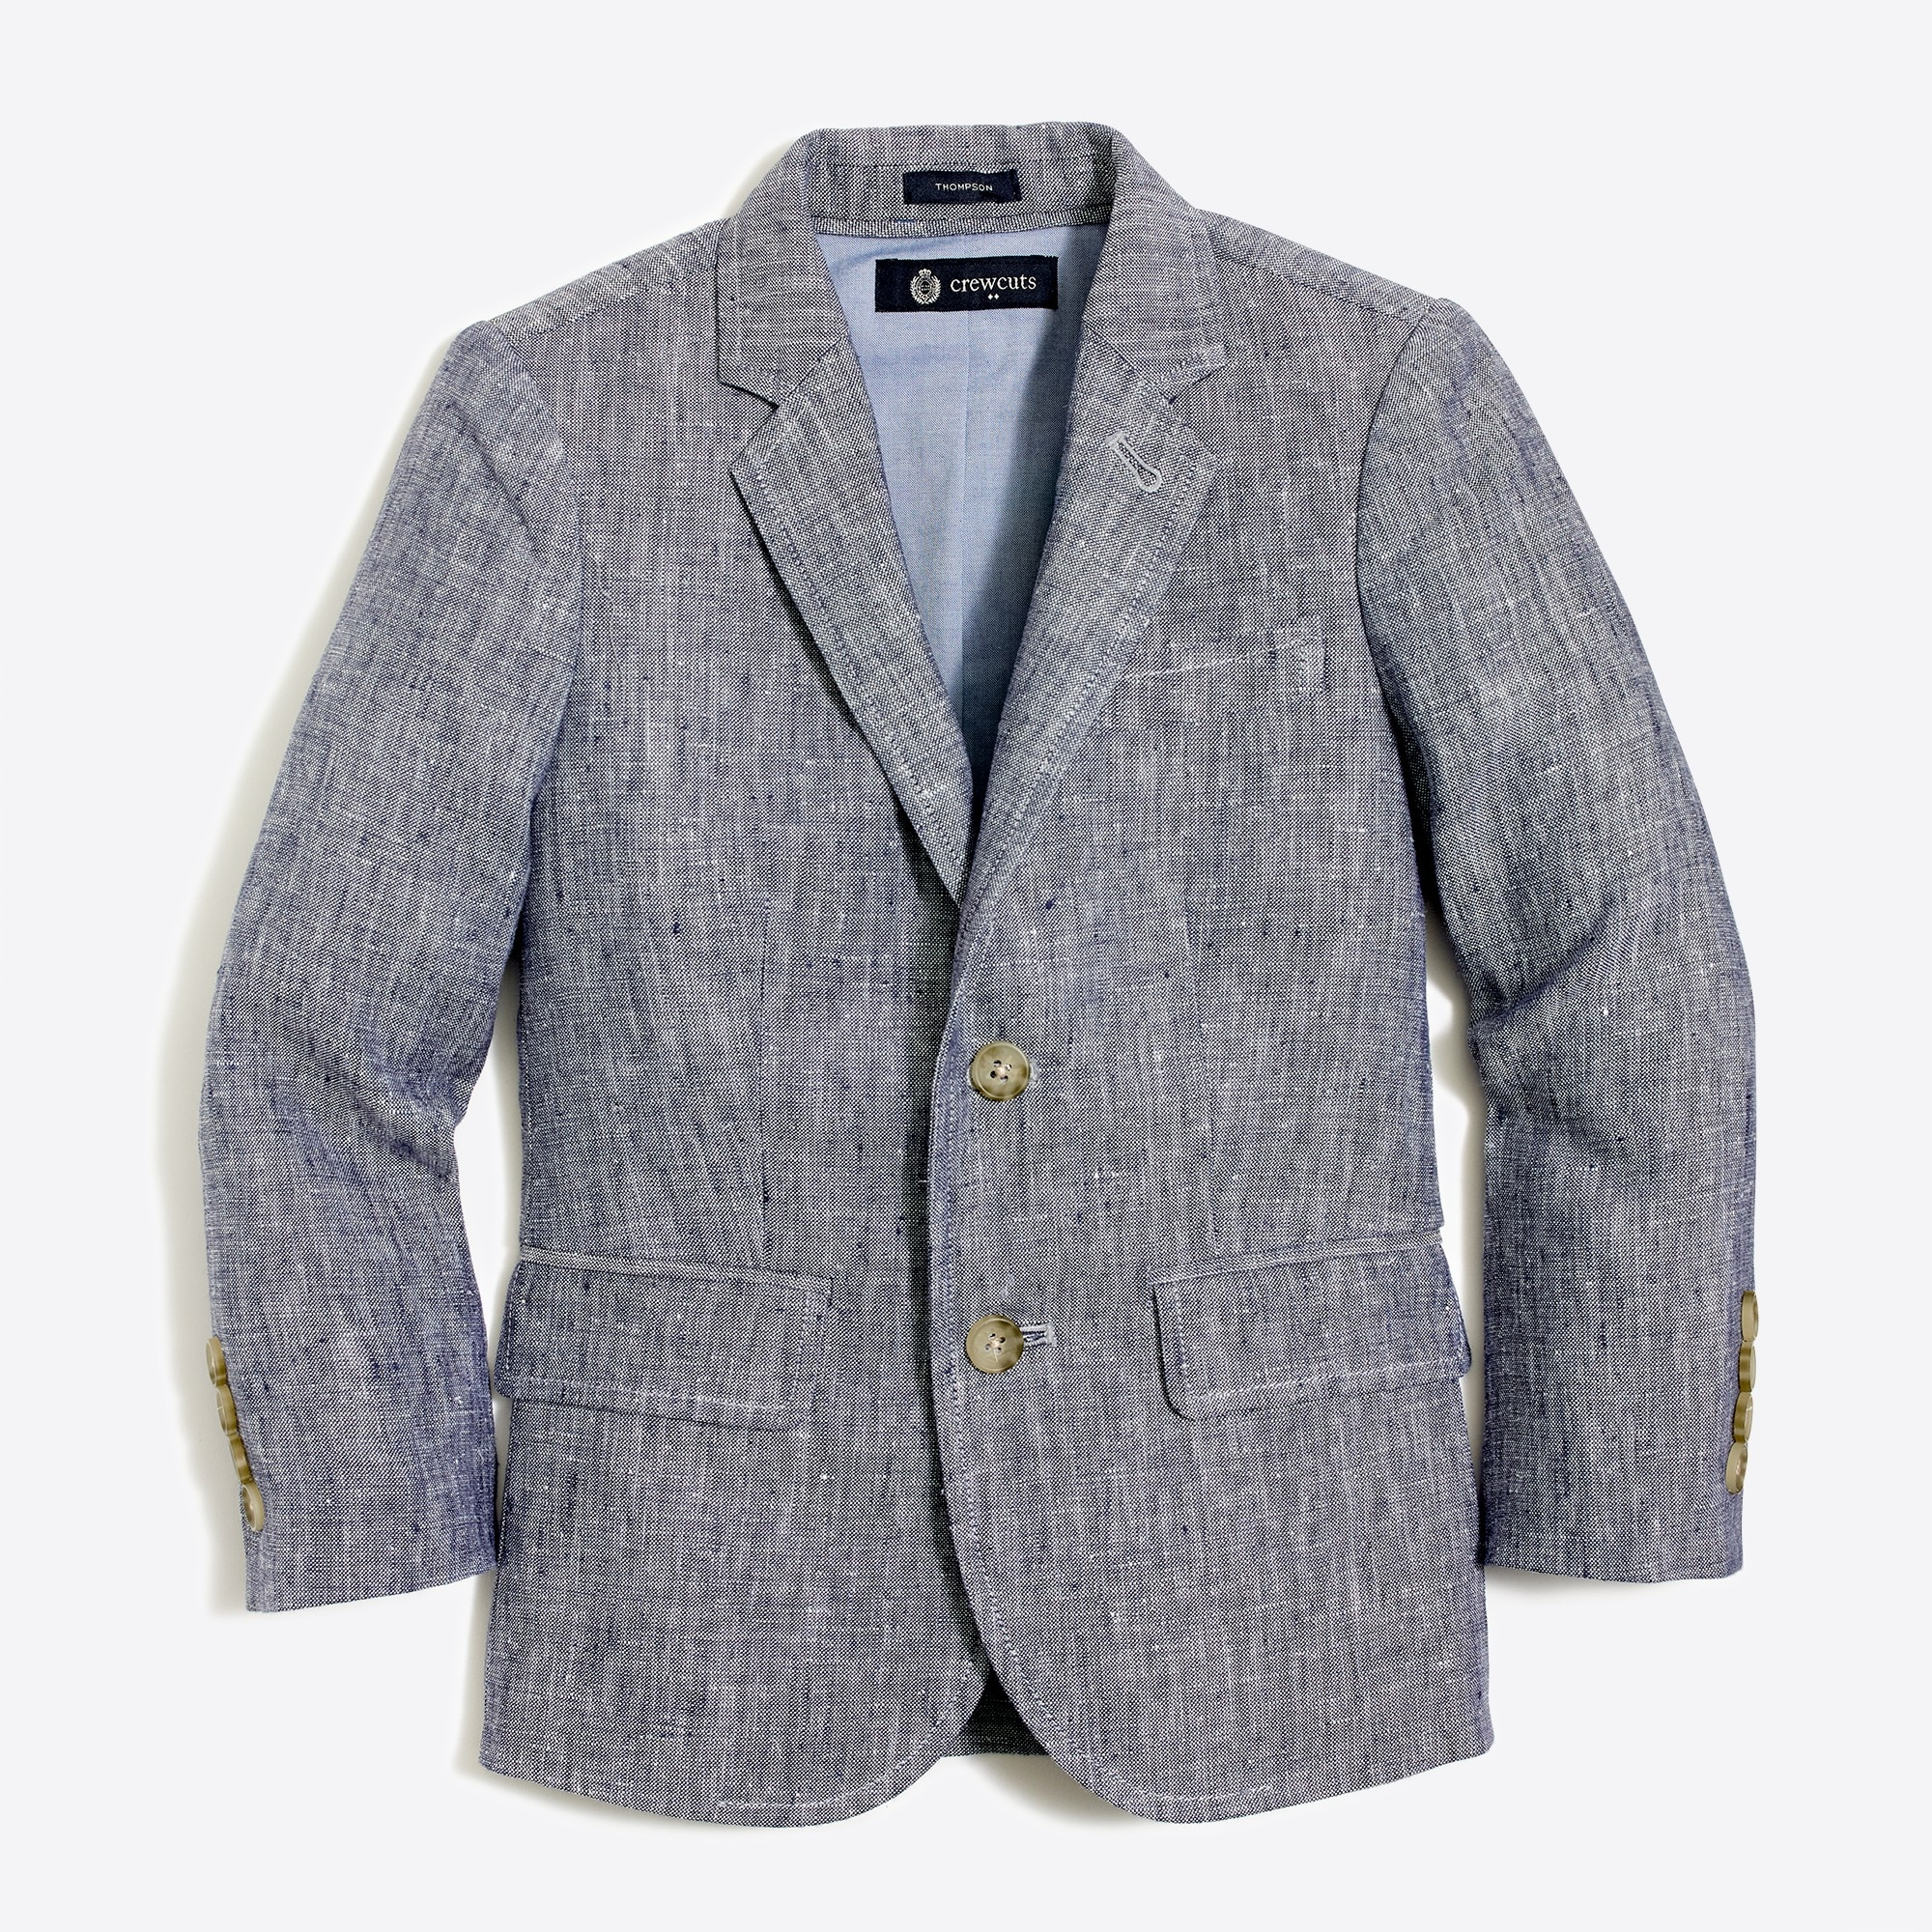 Boys' Thompson blazer in slub linen factoryboys blazers & vests c